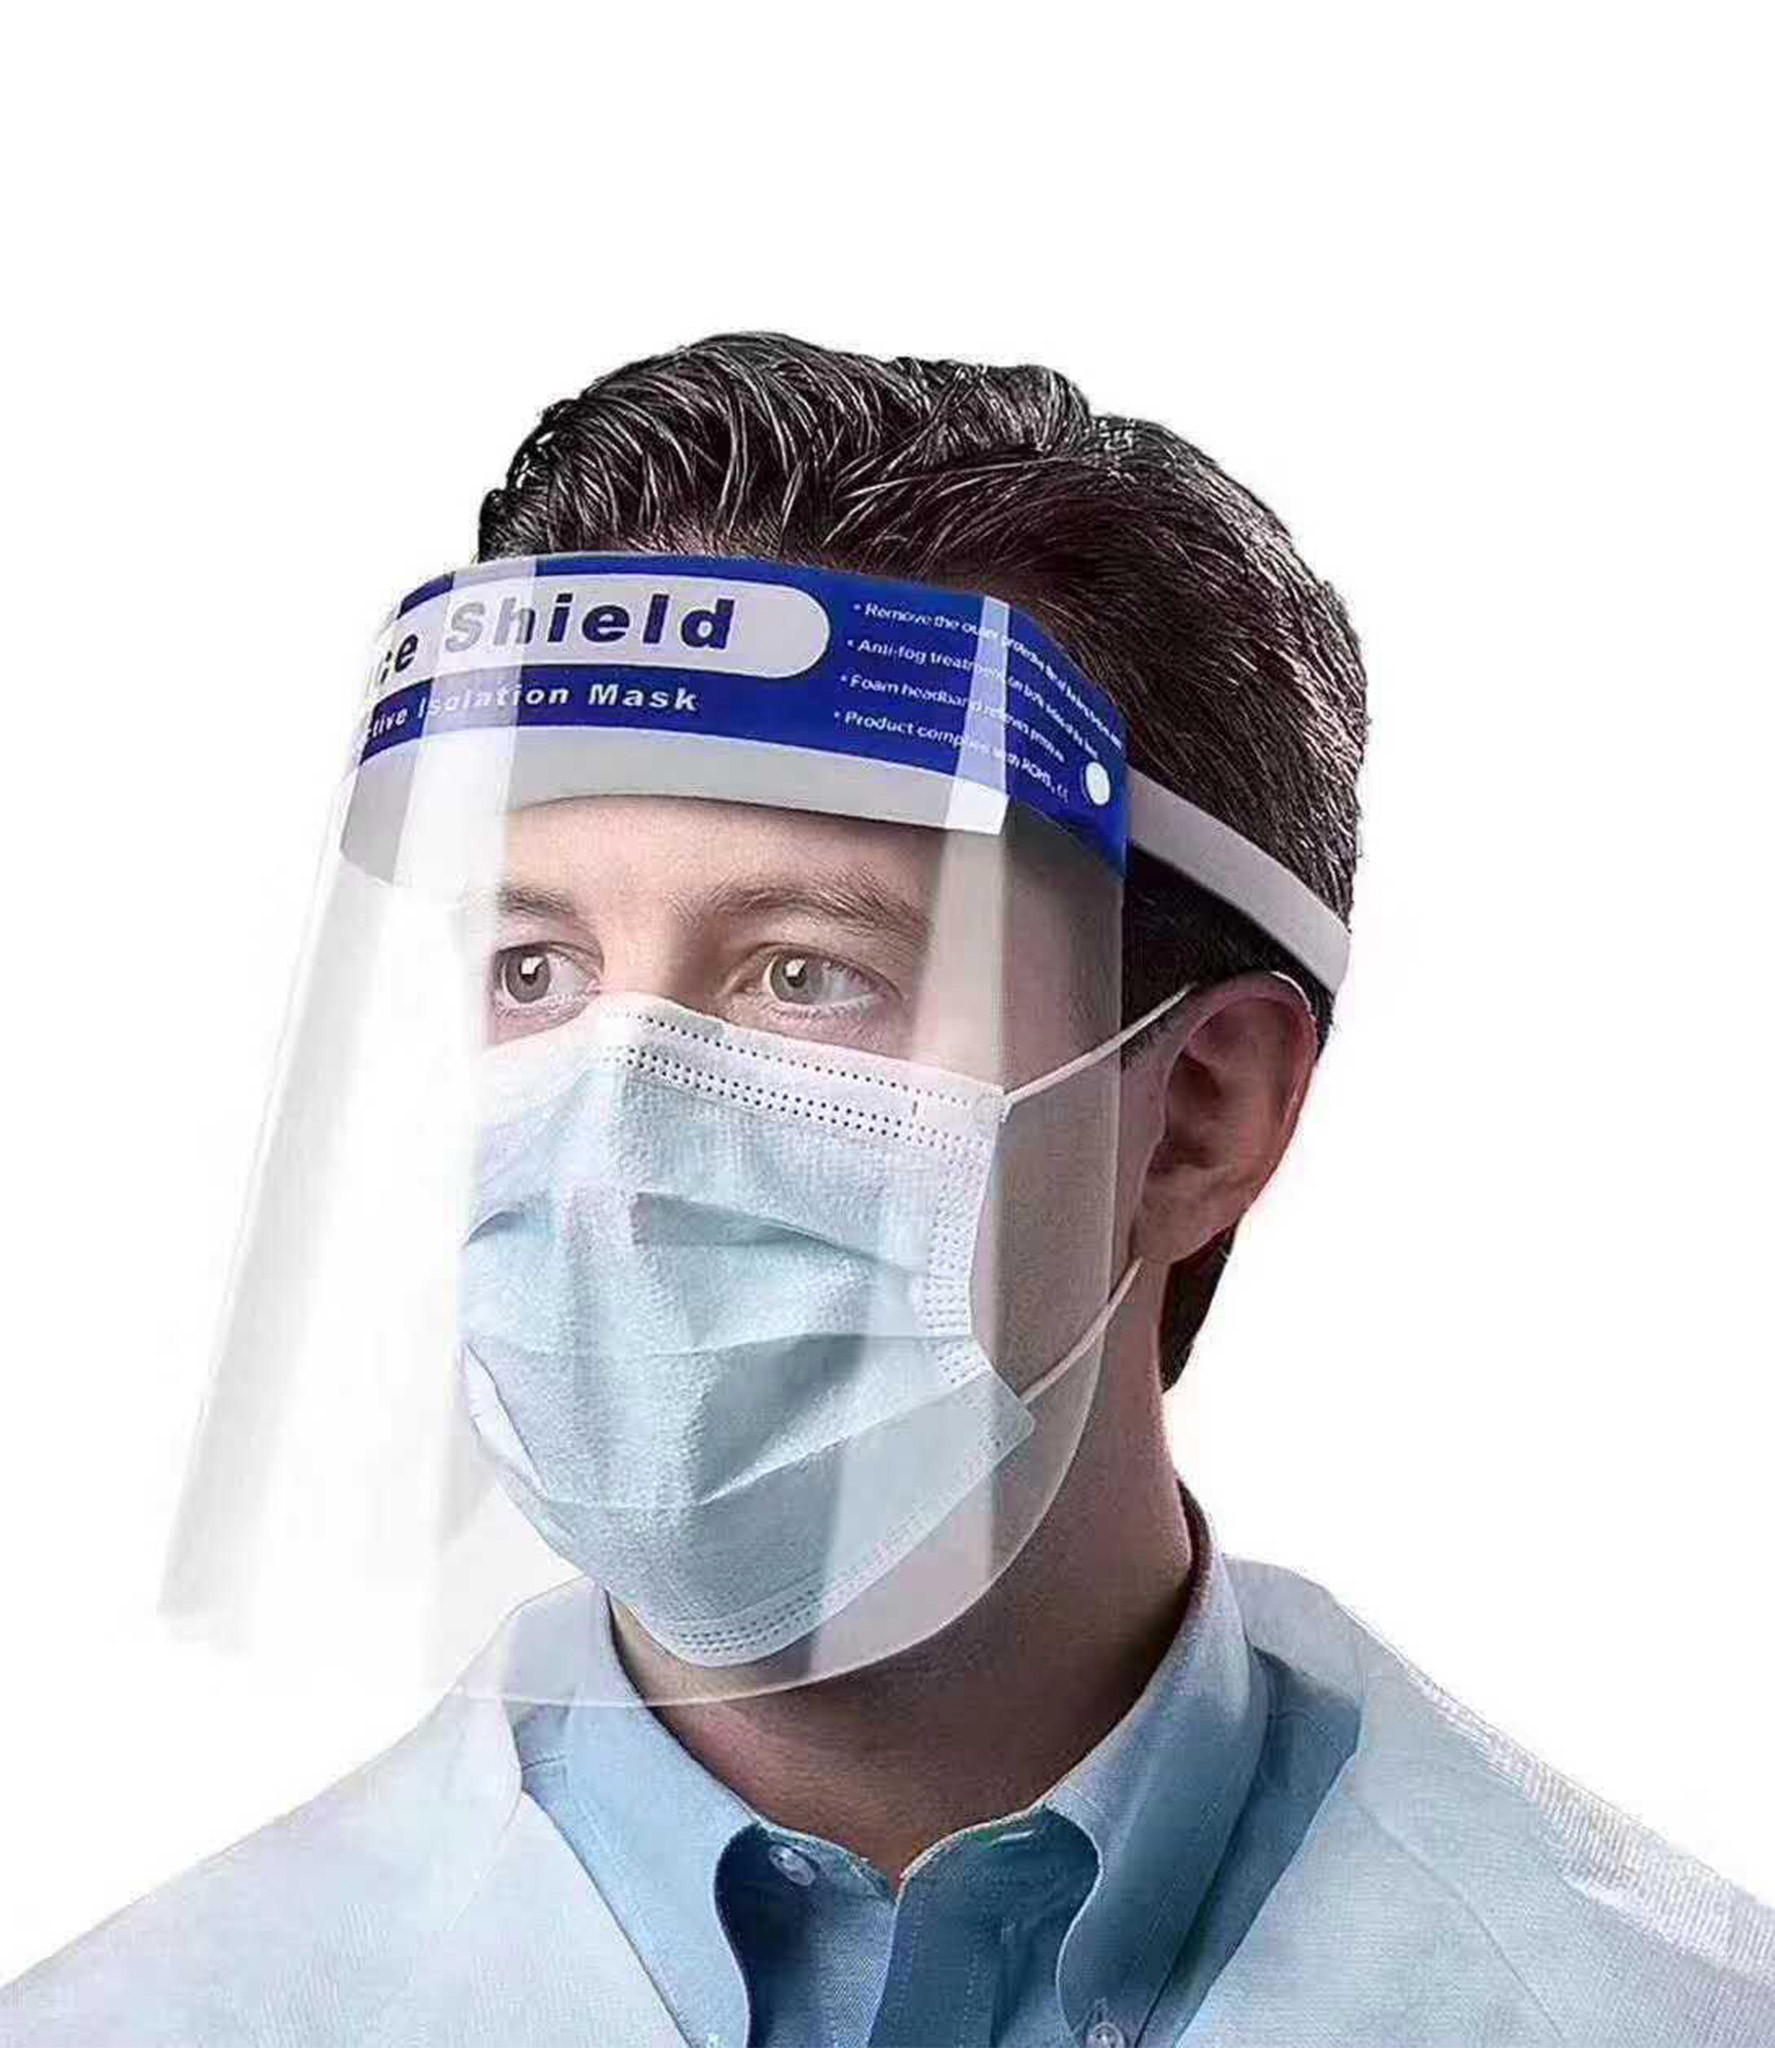 Safety Face Shield Transparent Protective Mask